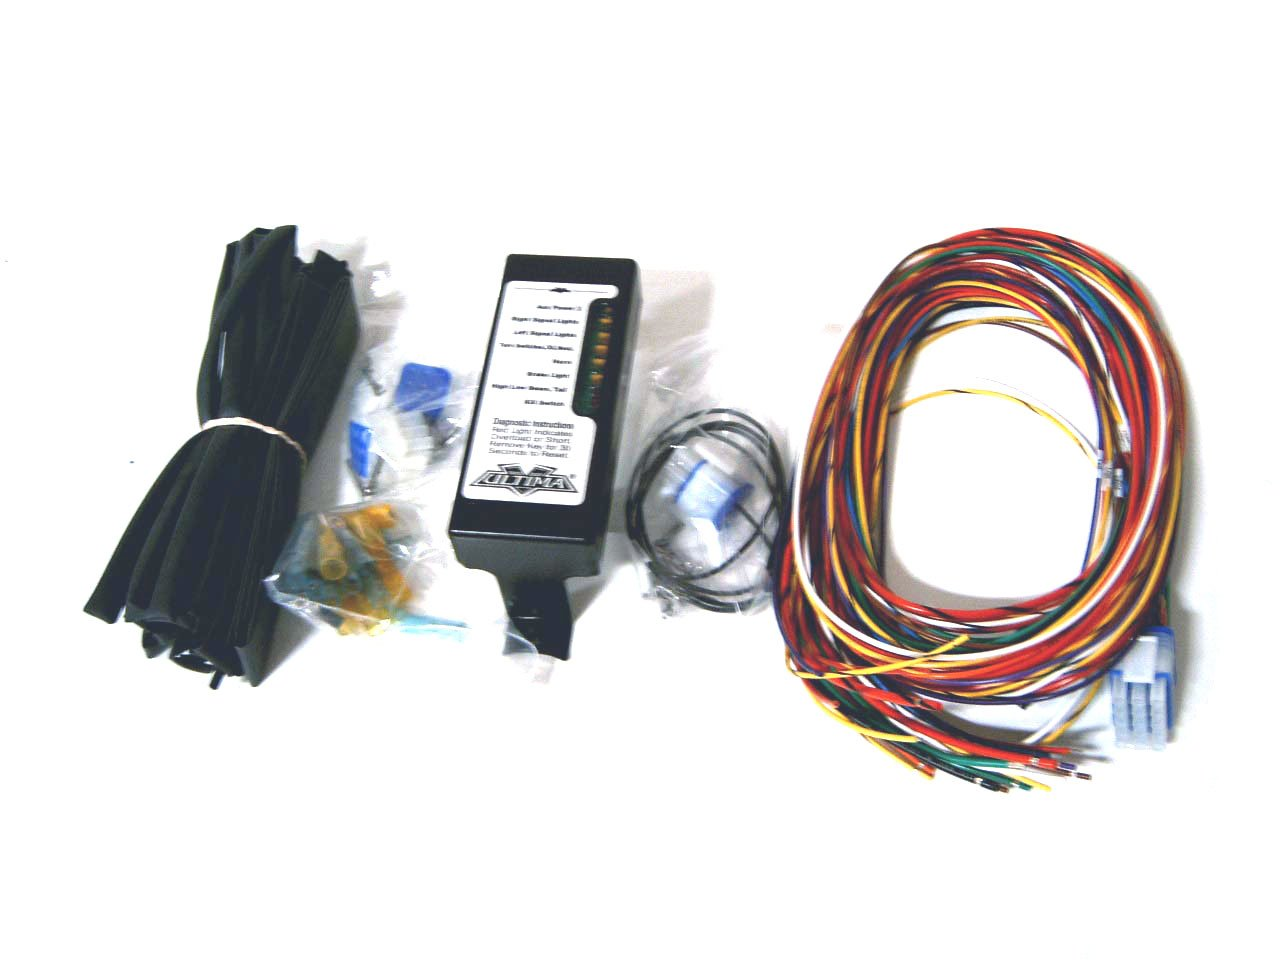 61DV2Bq5%2BHL._SL1280_ amazon com ultima complete wiring harness kit for harley davidson where to buy a trailer wiring harness at mifinder.co